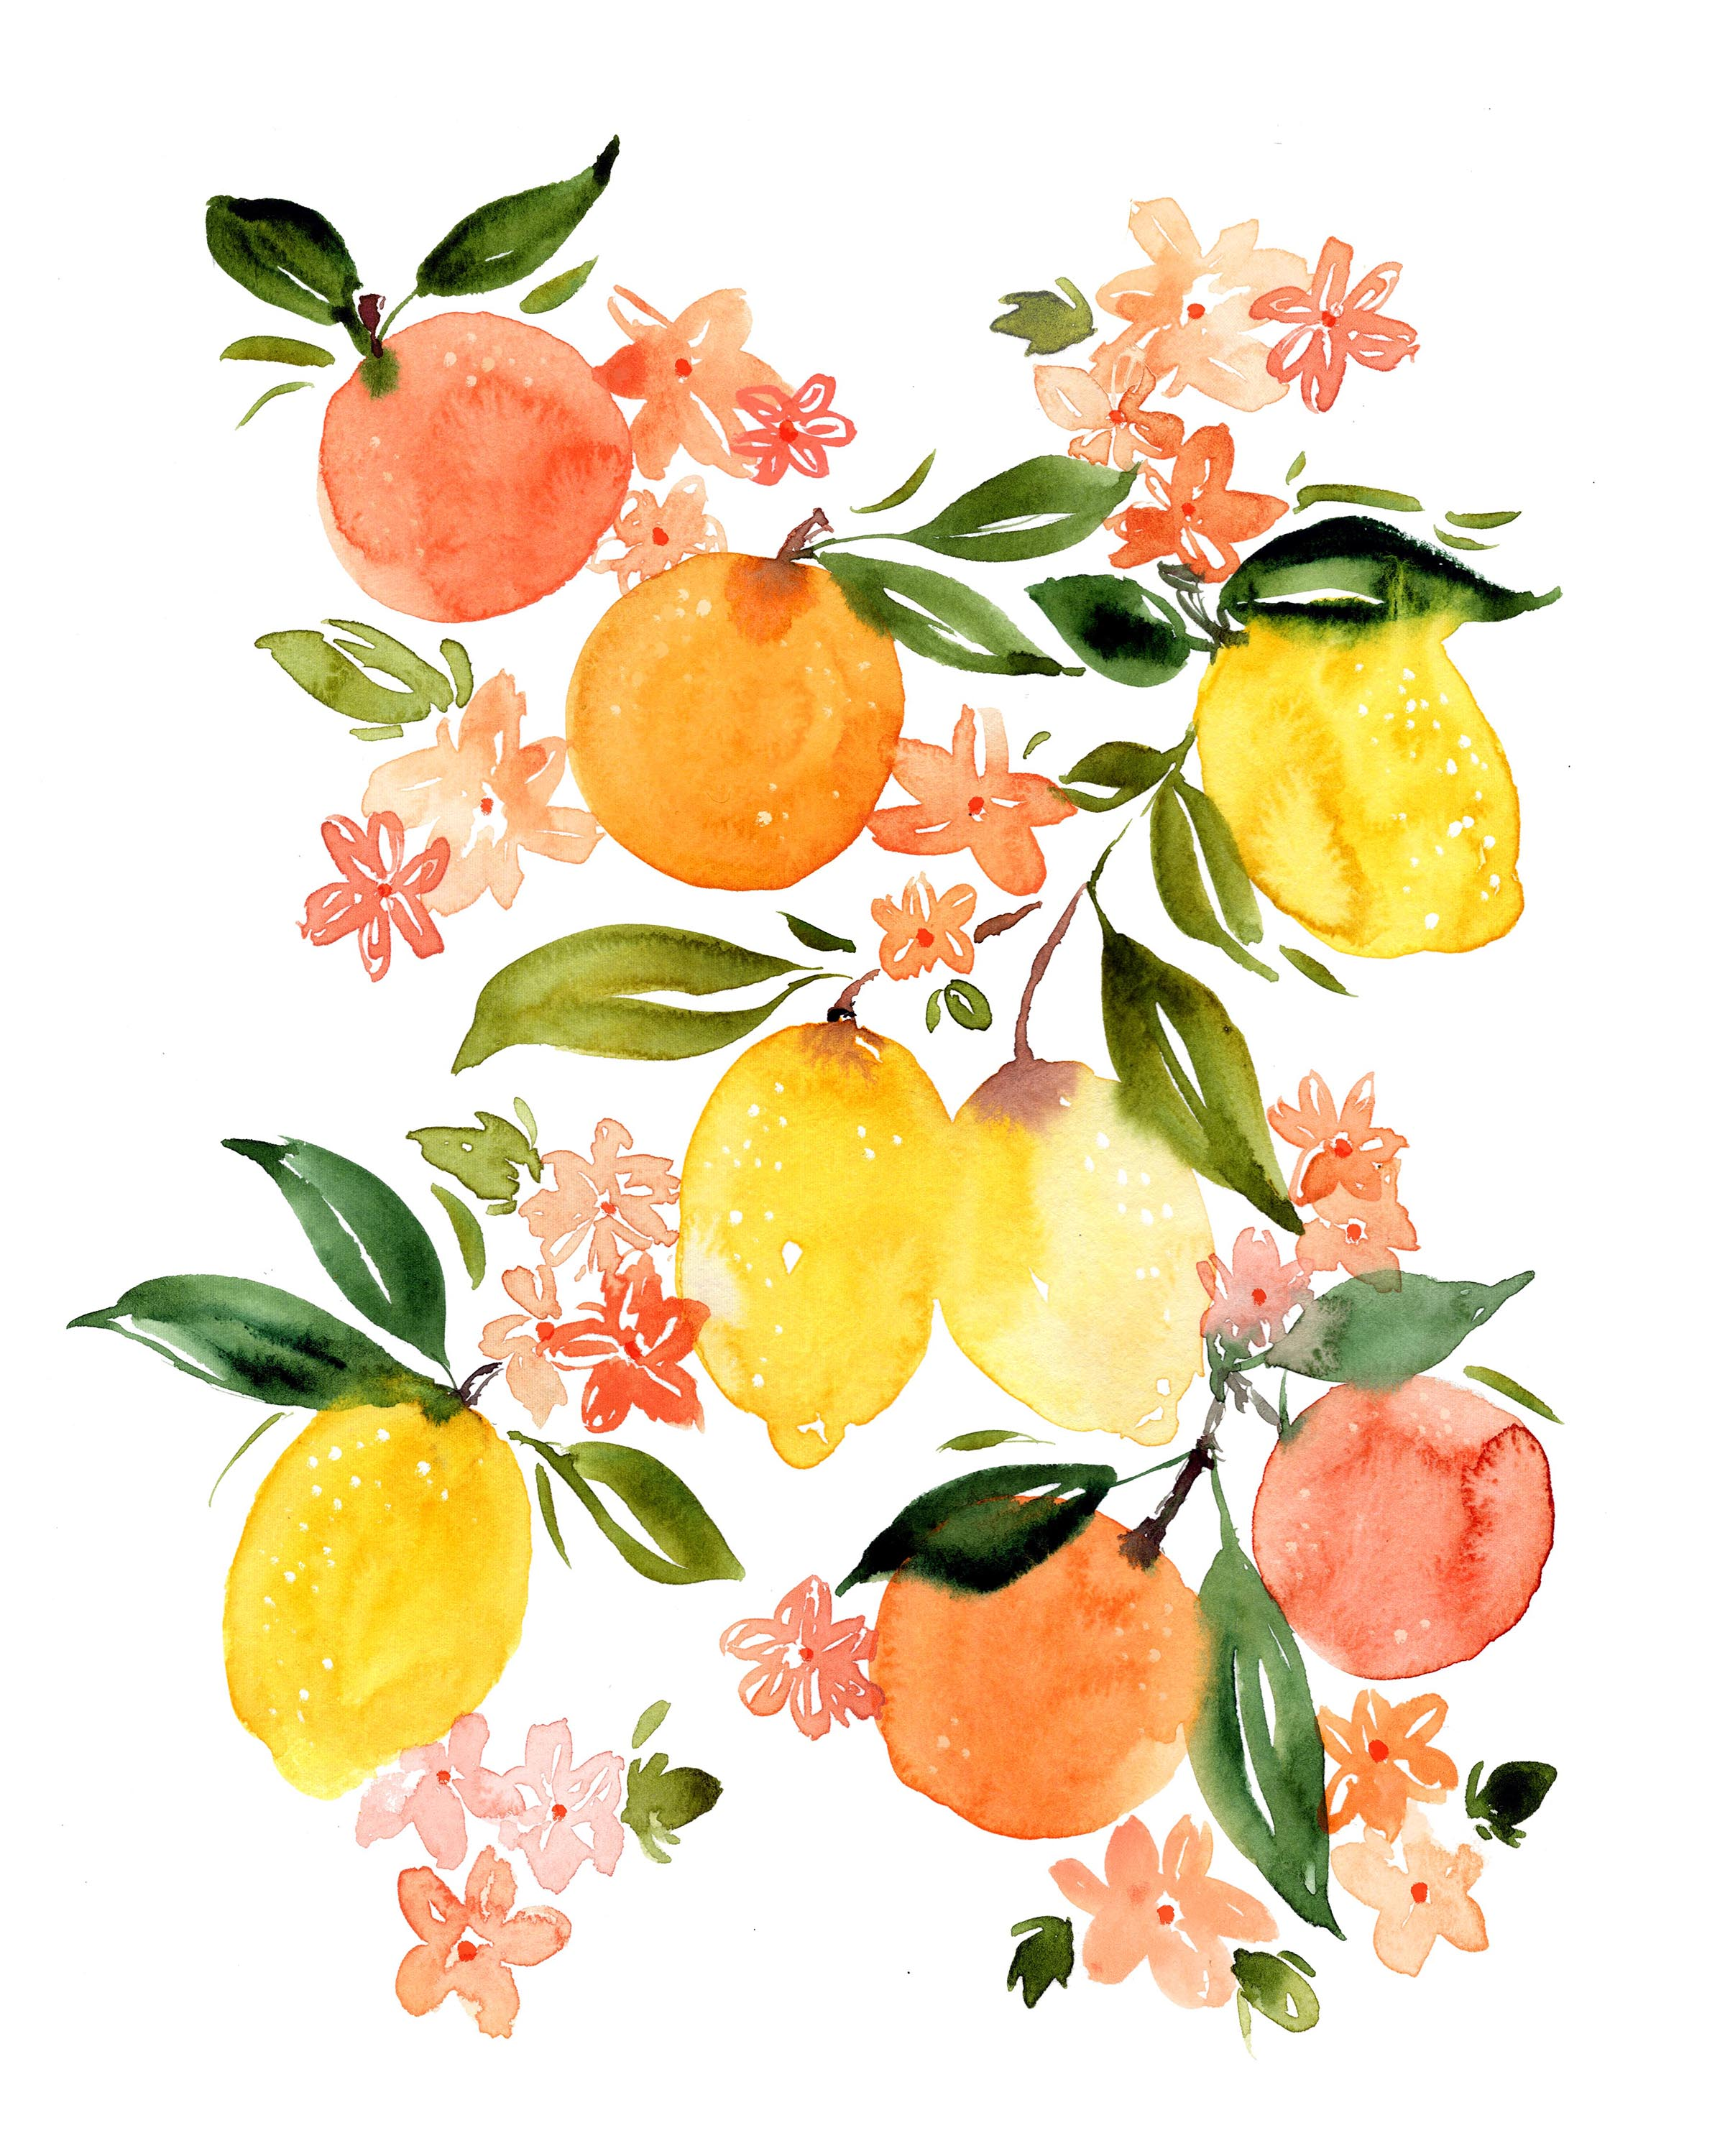 Sara Berrenson Illustration  watercolor oranges and lemons